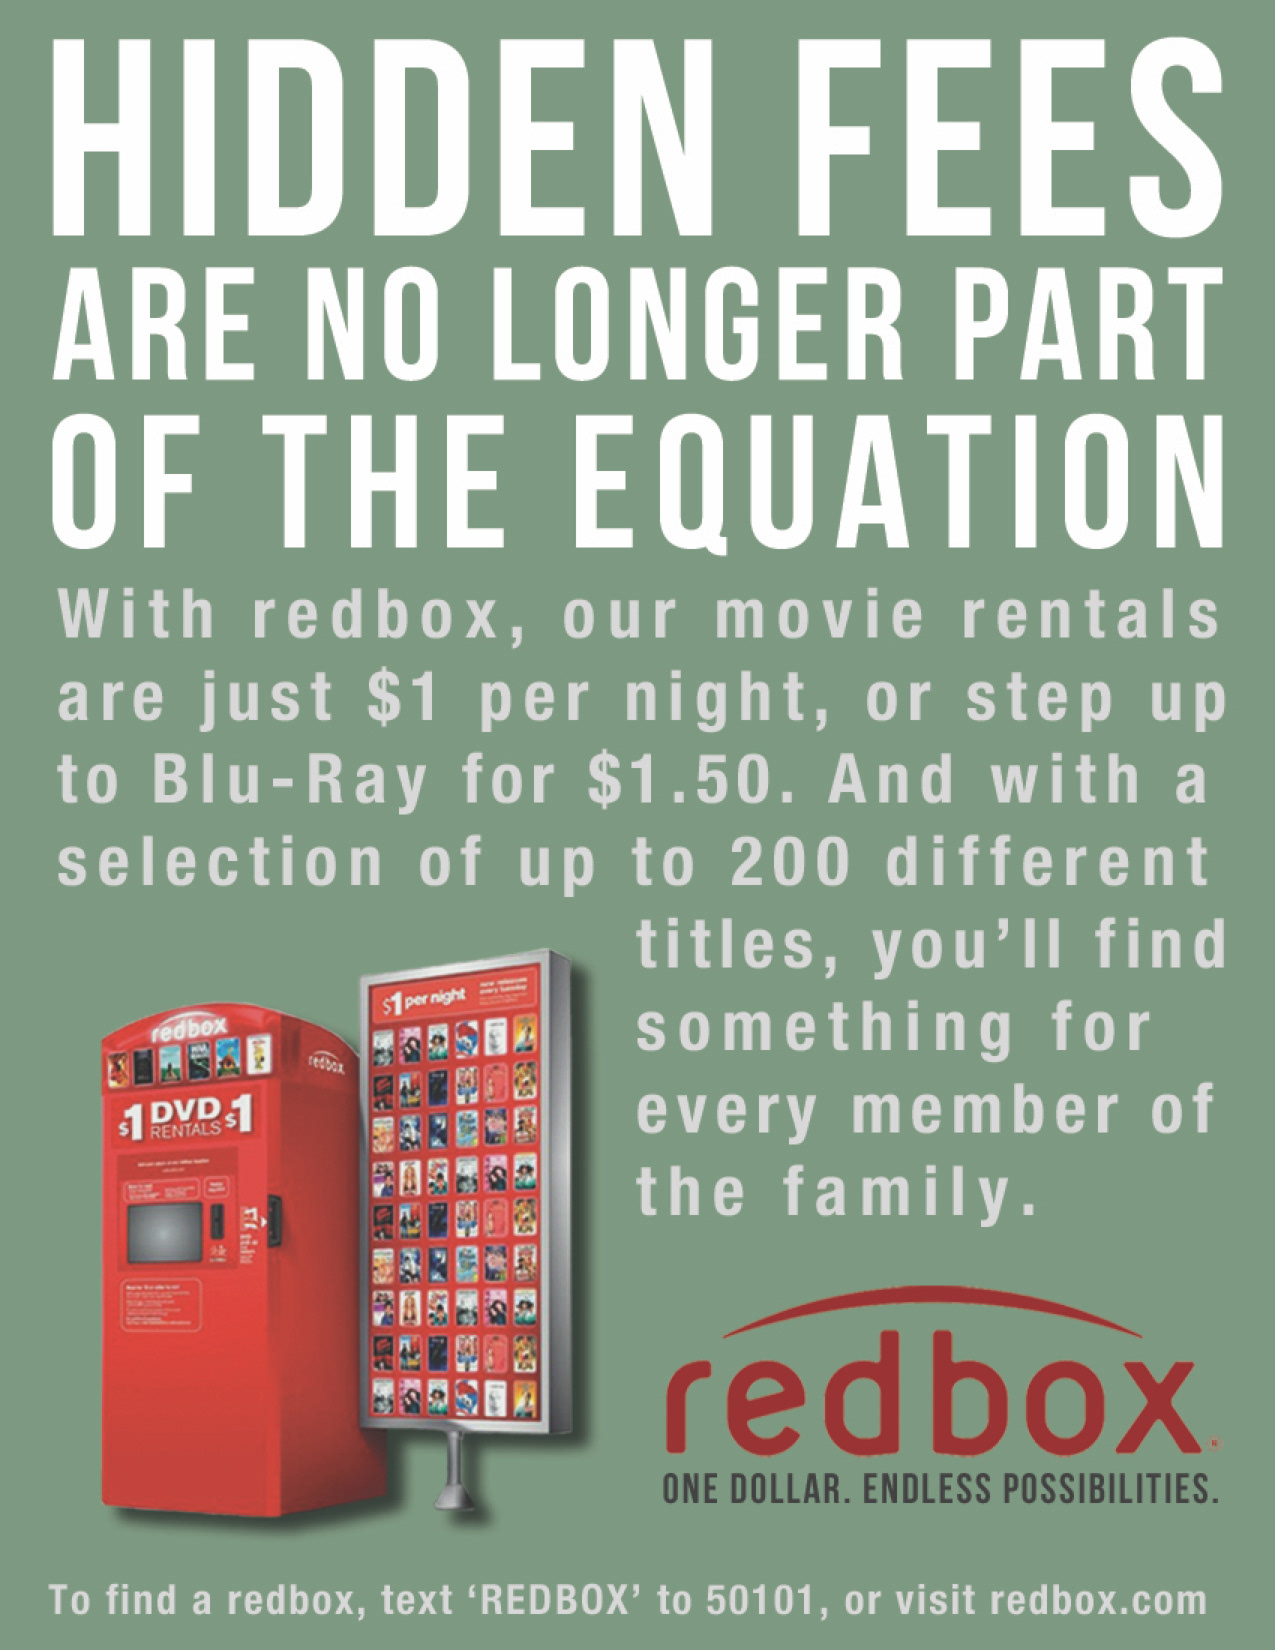 Kevin Patterson Redbox Campaign